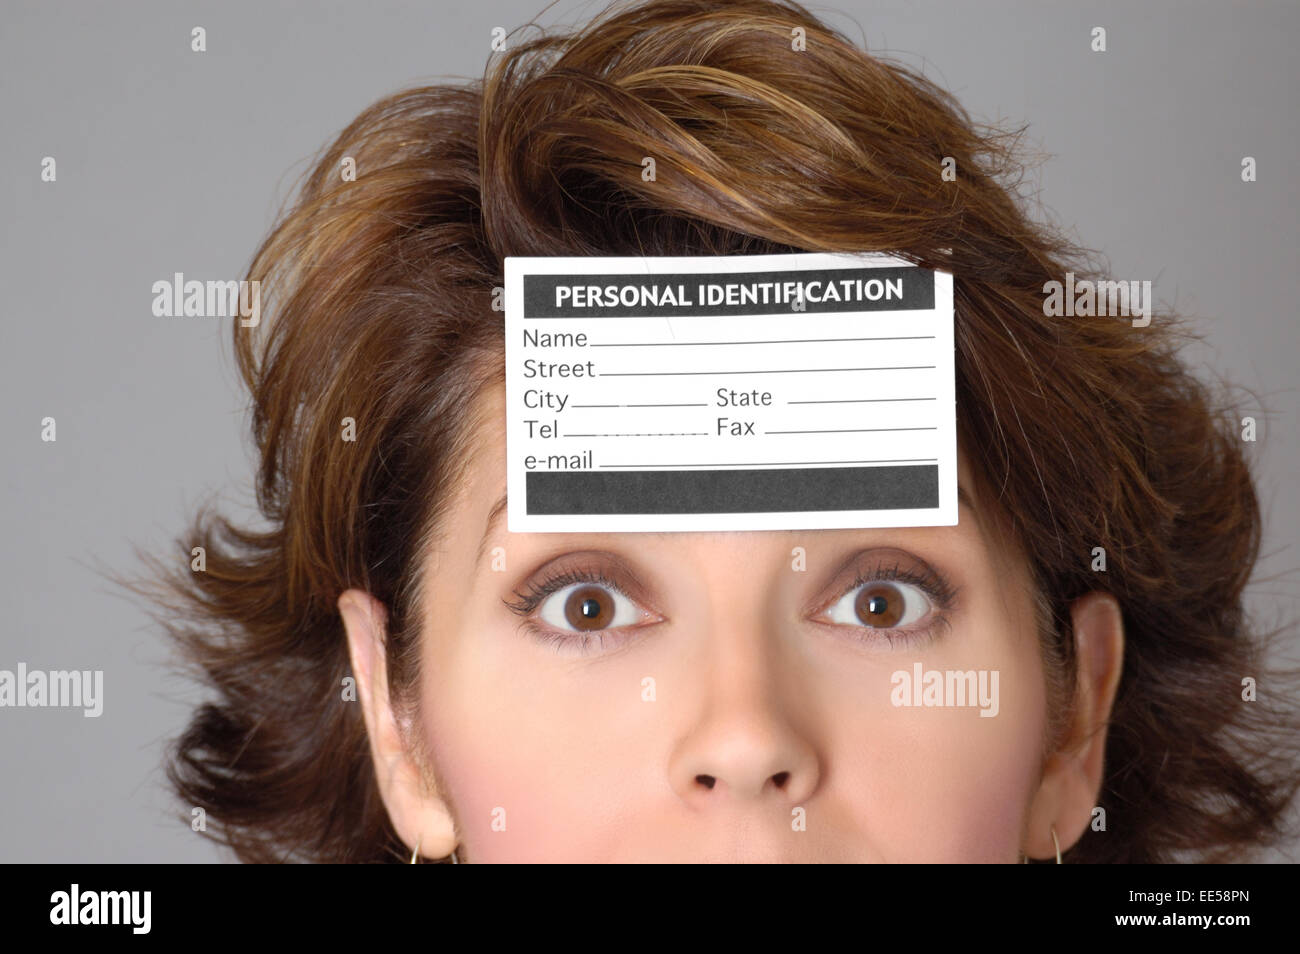 Woman wearing an identification card on her forehead.  Can represent privacy issues, identity theft, citizenship - Stock Image